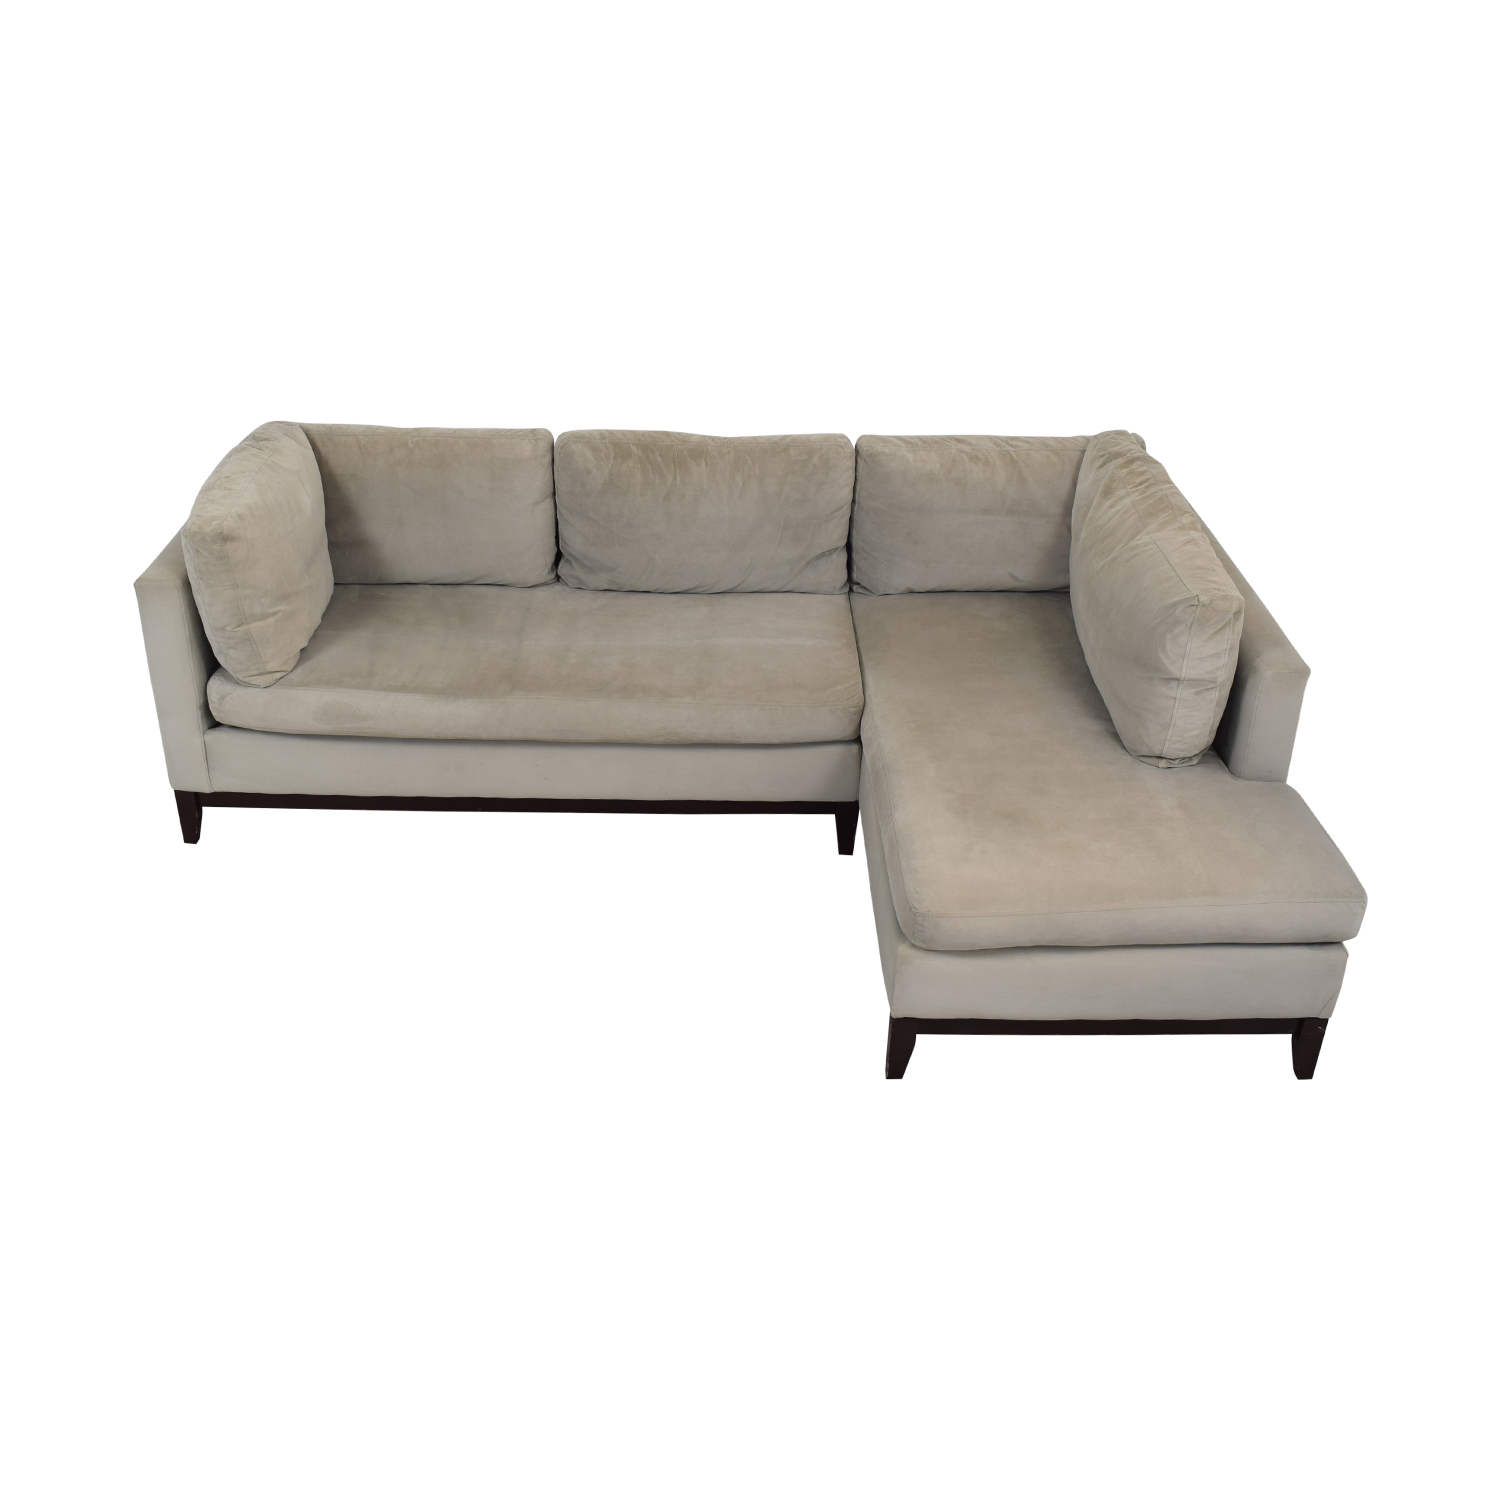 West Elm West Elm Blake Chaise Sectional Sofa coupon